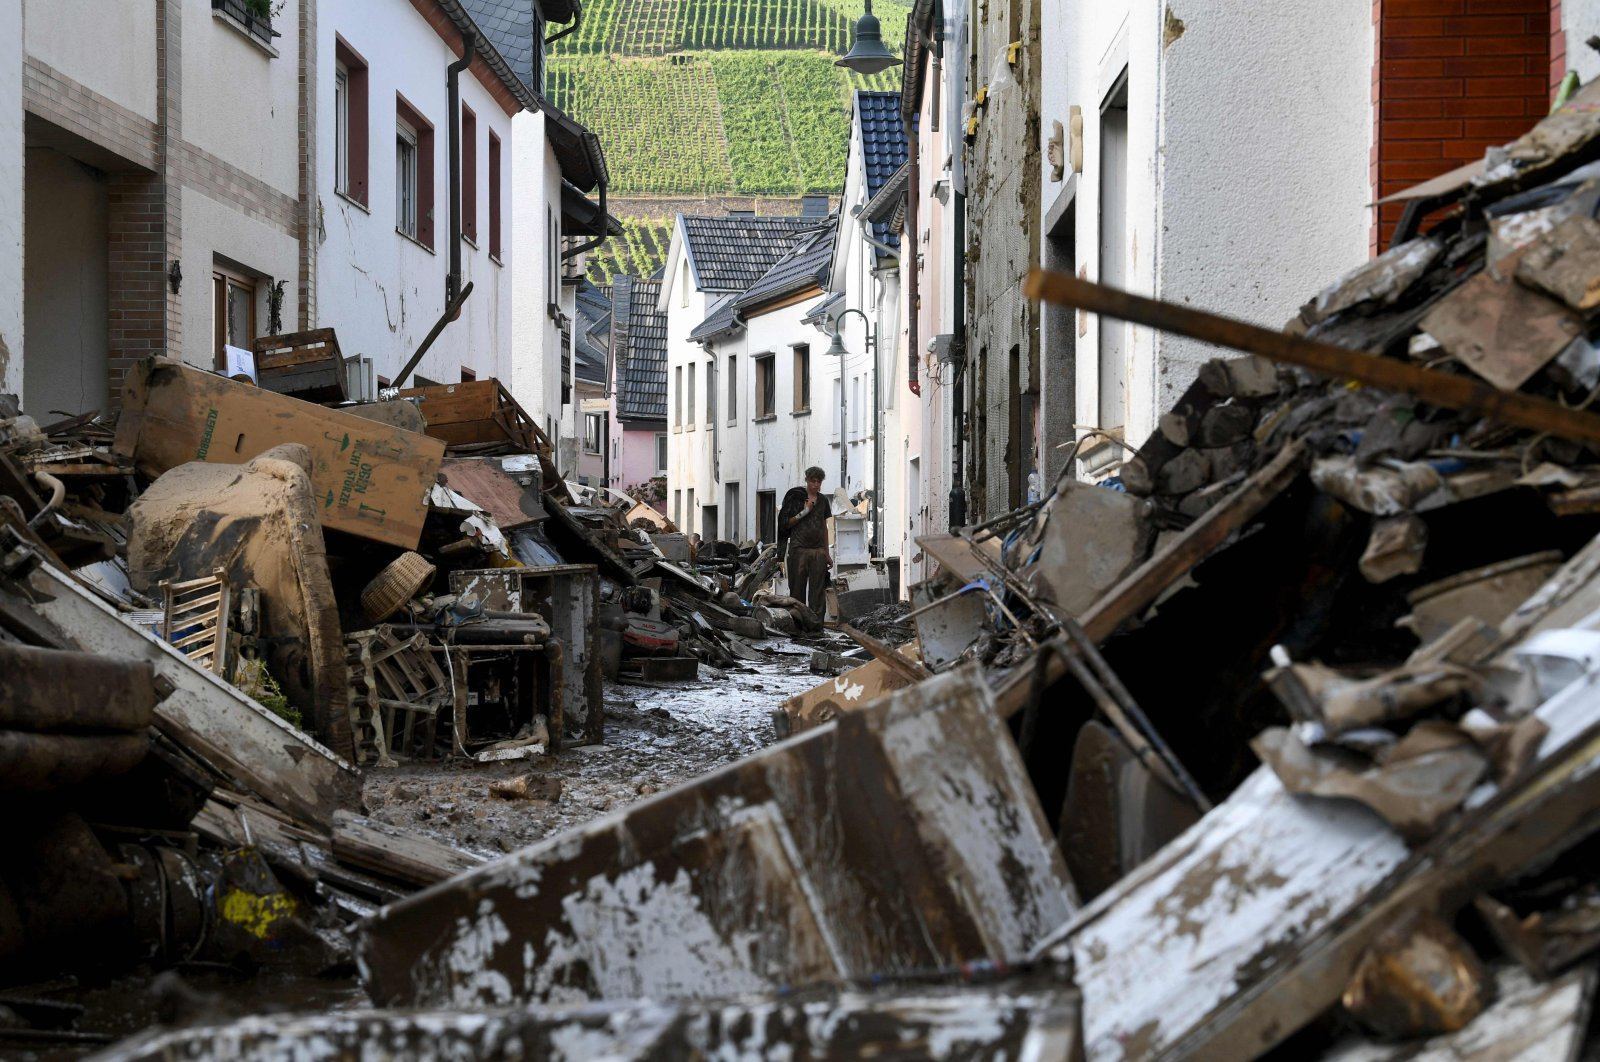 A resident walks in a muddy street full of debris and destroyed furniture after devastating floods in the city of Dernau, western Germany, on July 18, 2021. (AFP Photo)